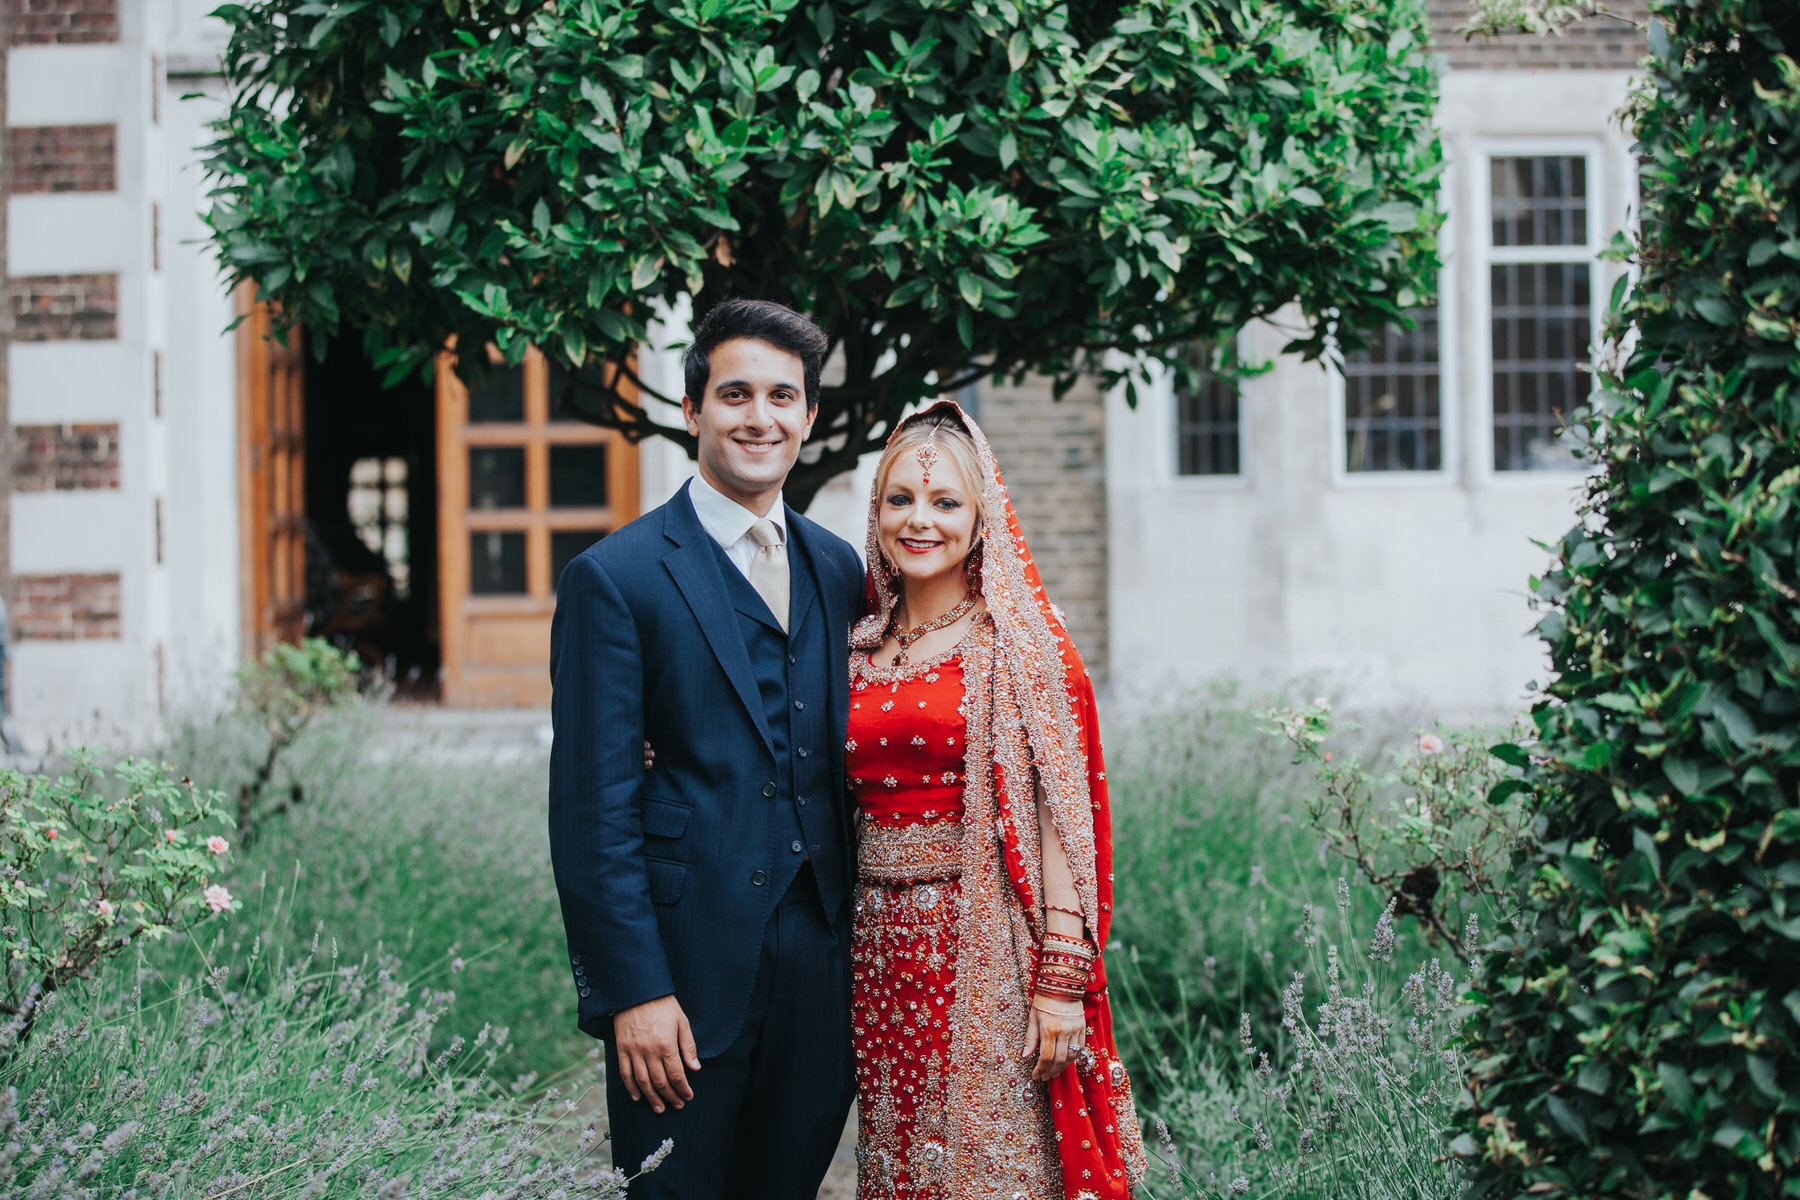 15-Anglo-Asian-London-Wedding-Middle-temple-gardens-bride-groom.jpg